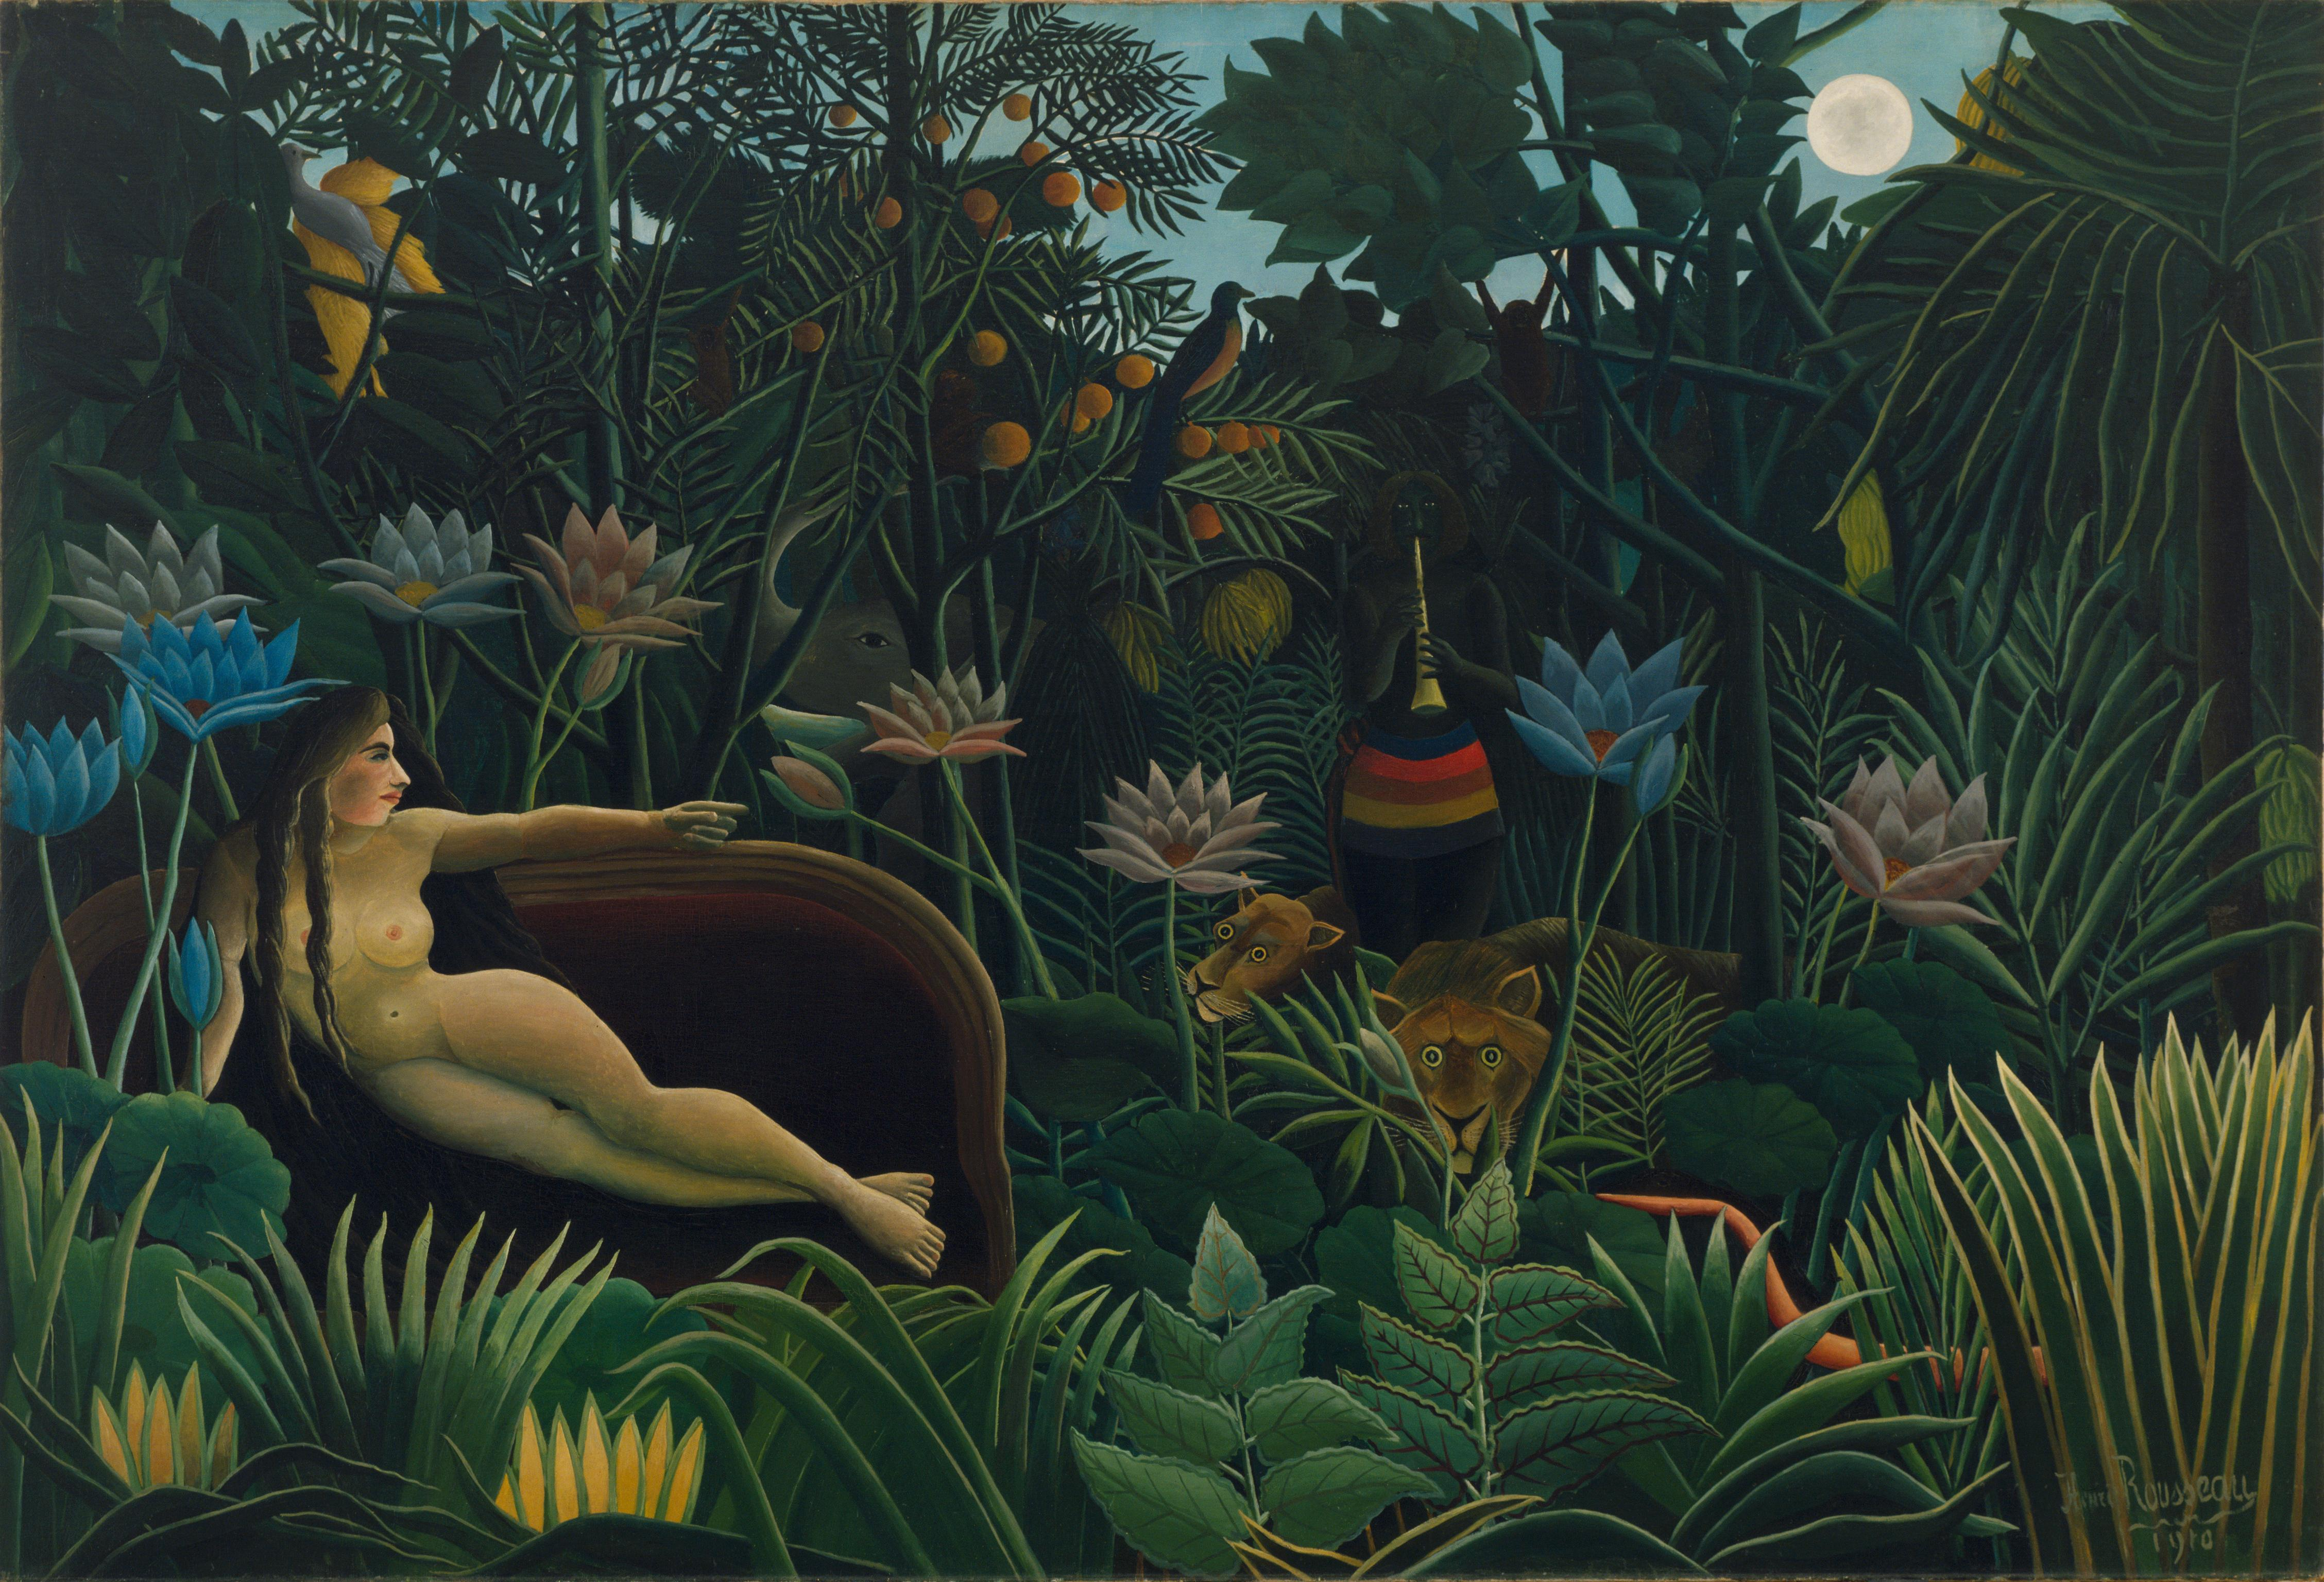 Henri Rousseau, The Dream (Le Rêve),